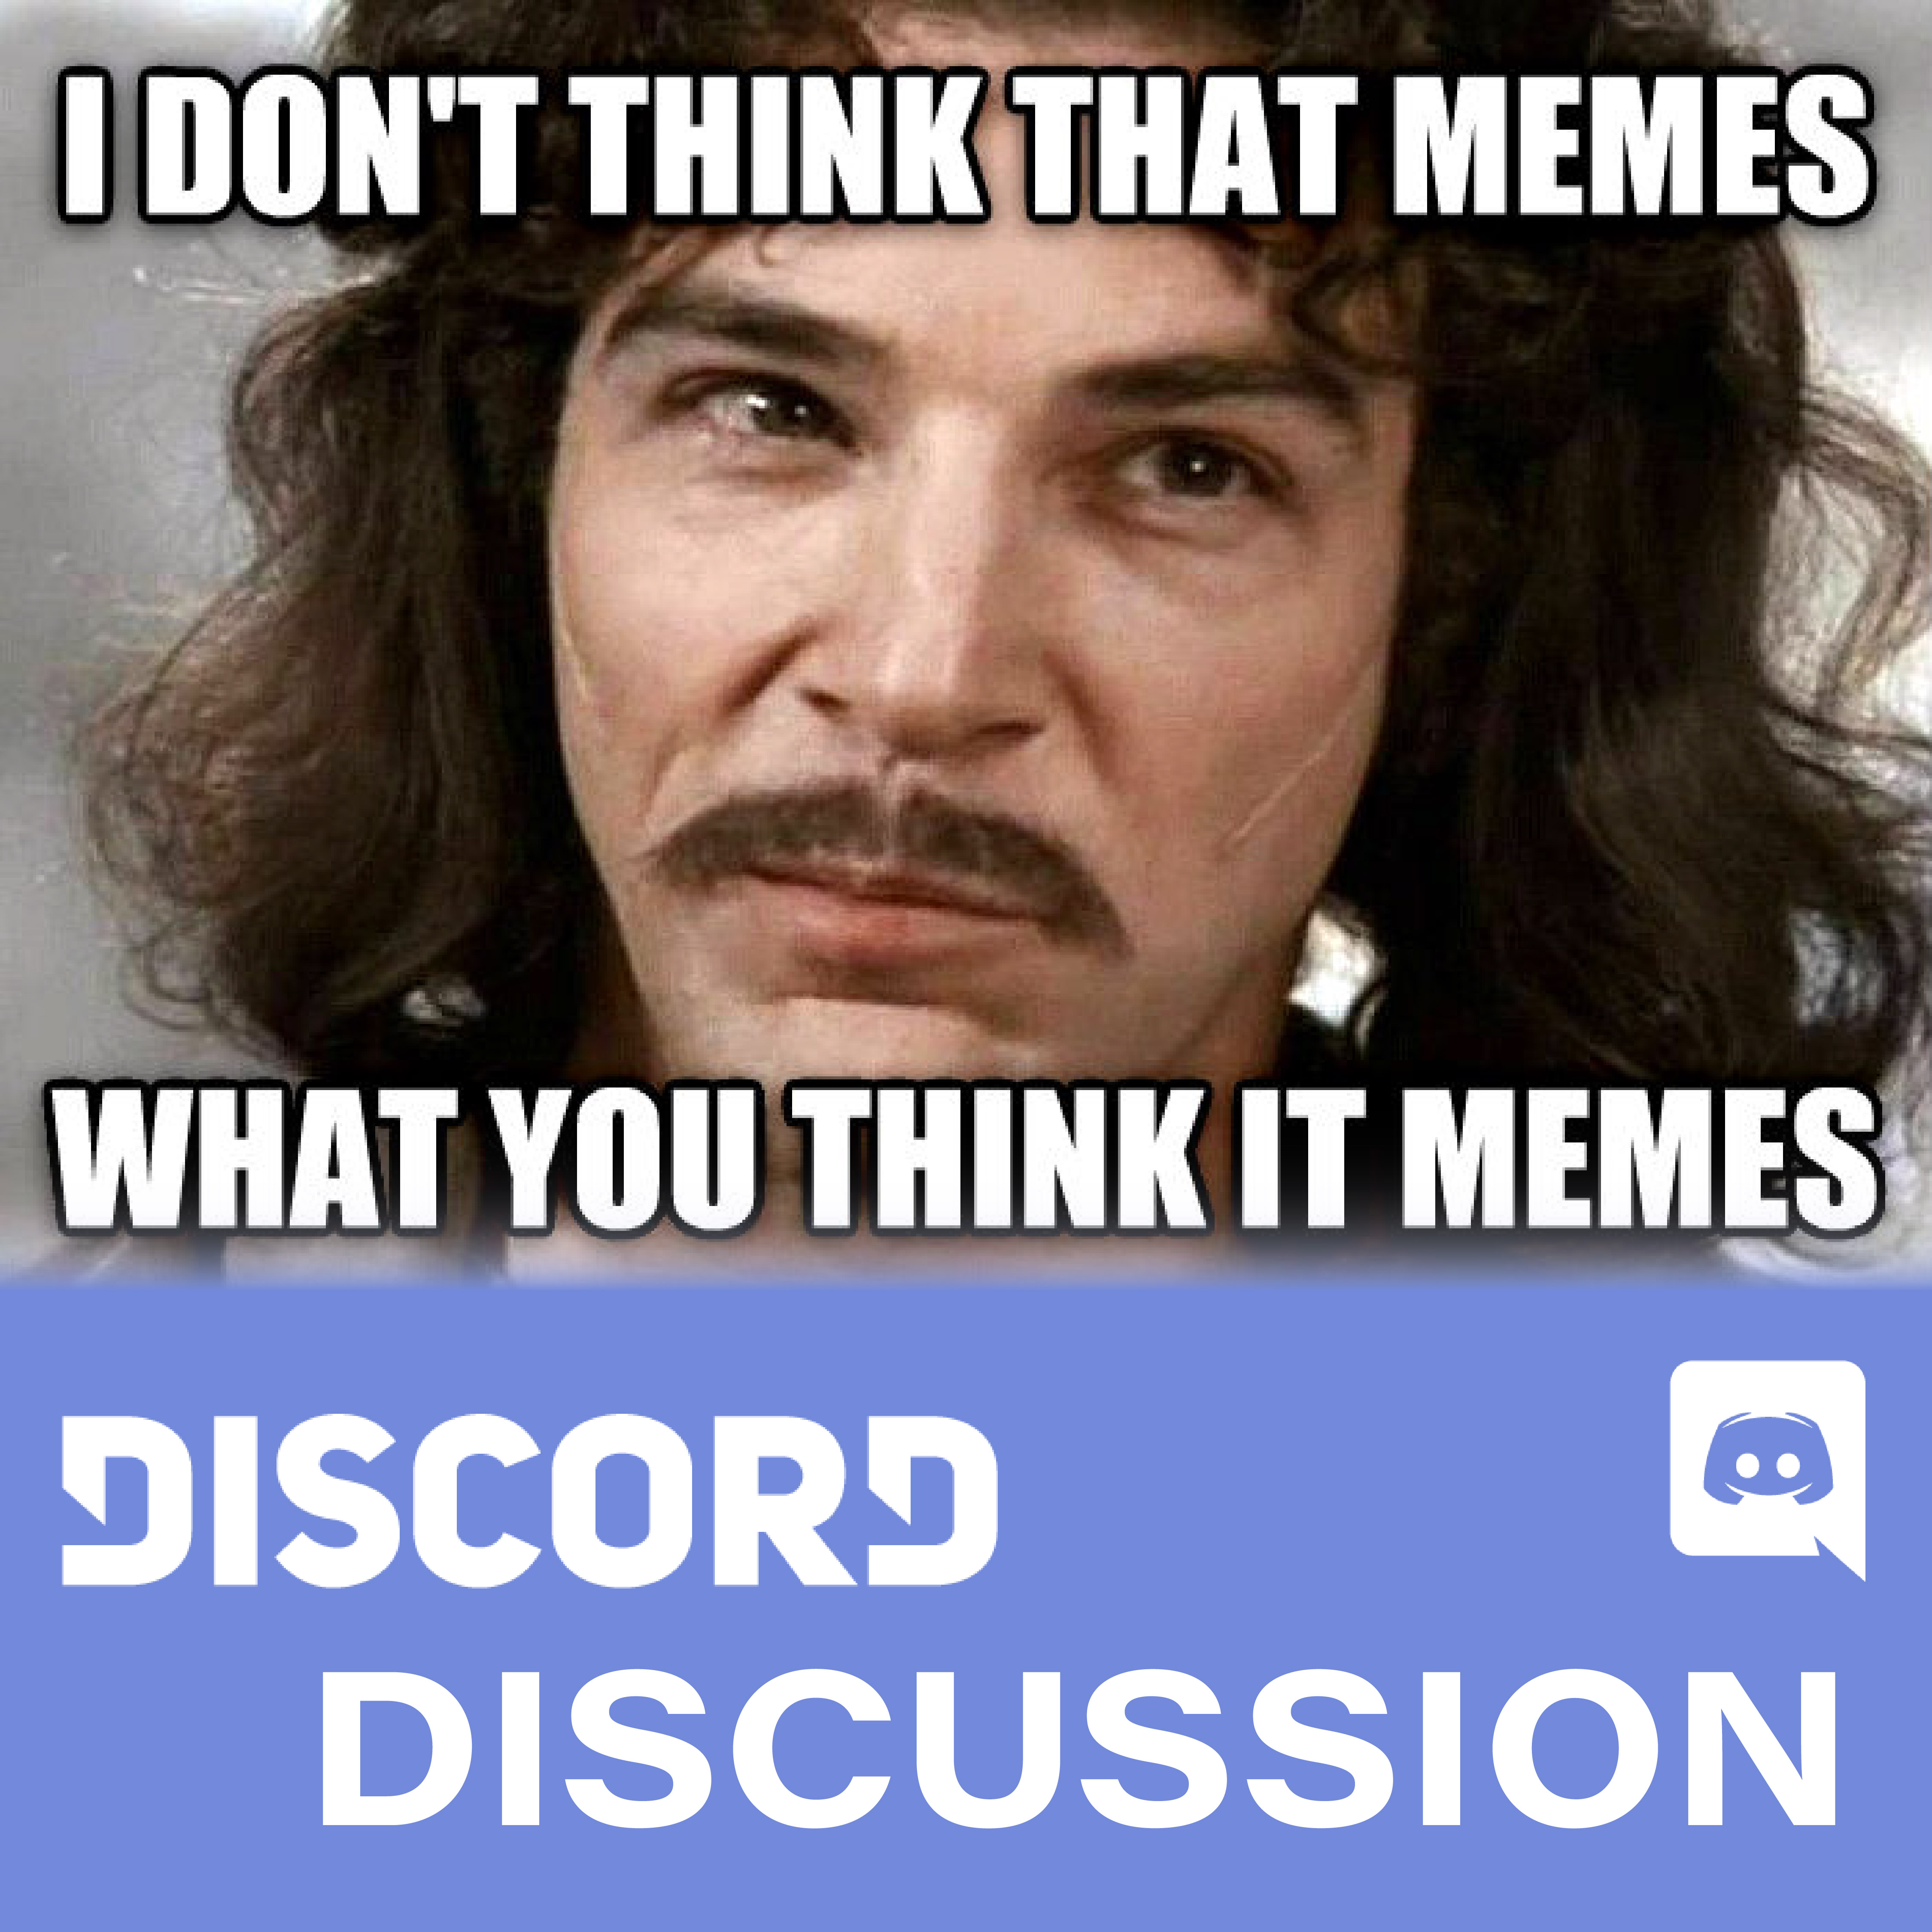 Discord Discussion What Makes a Meme?